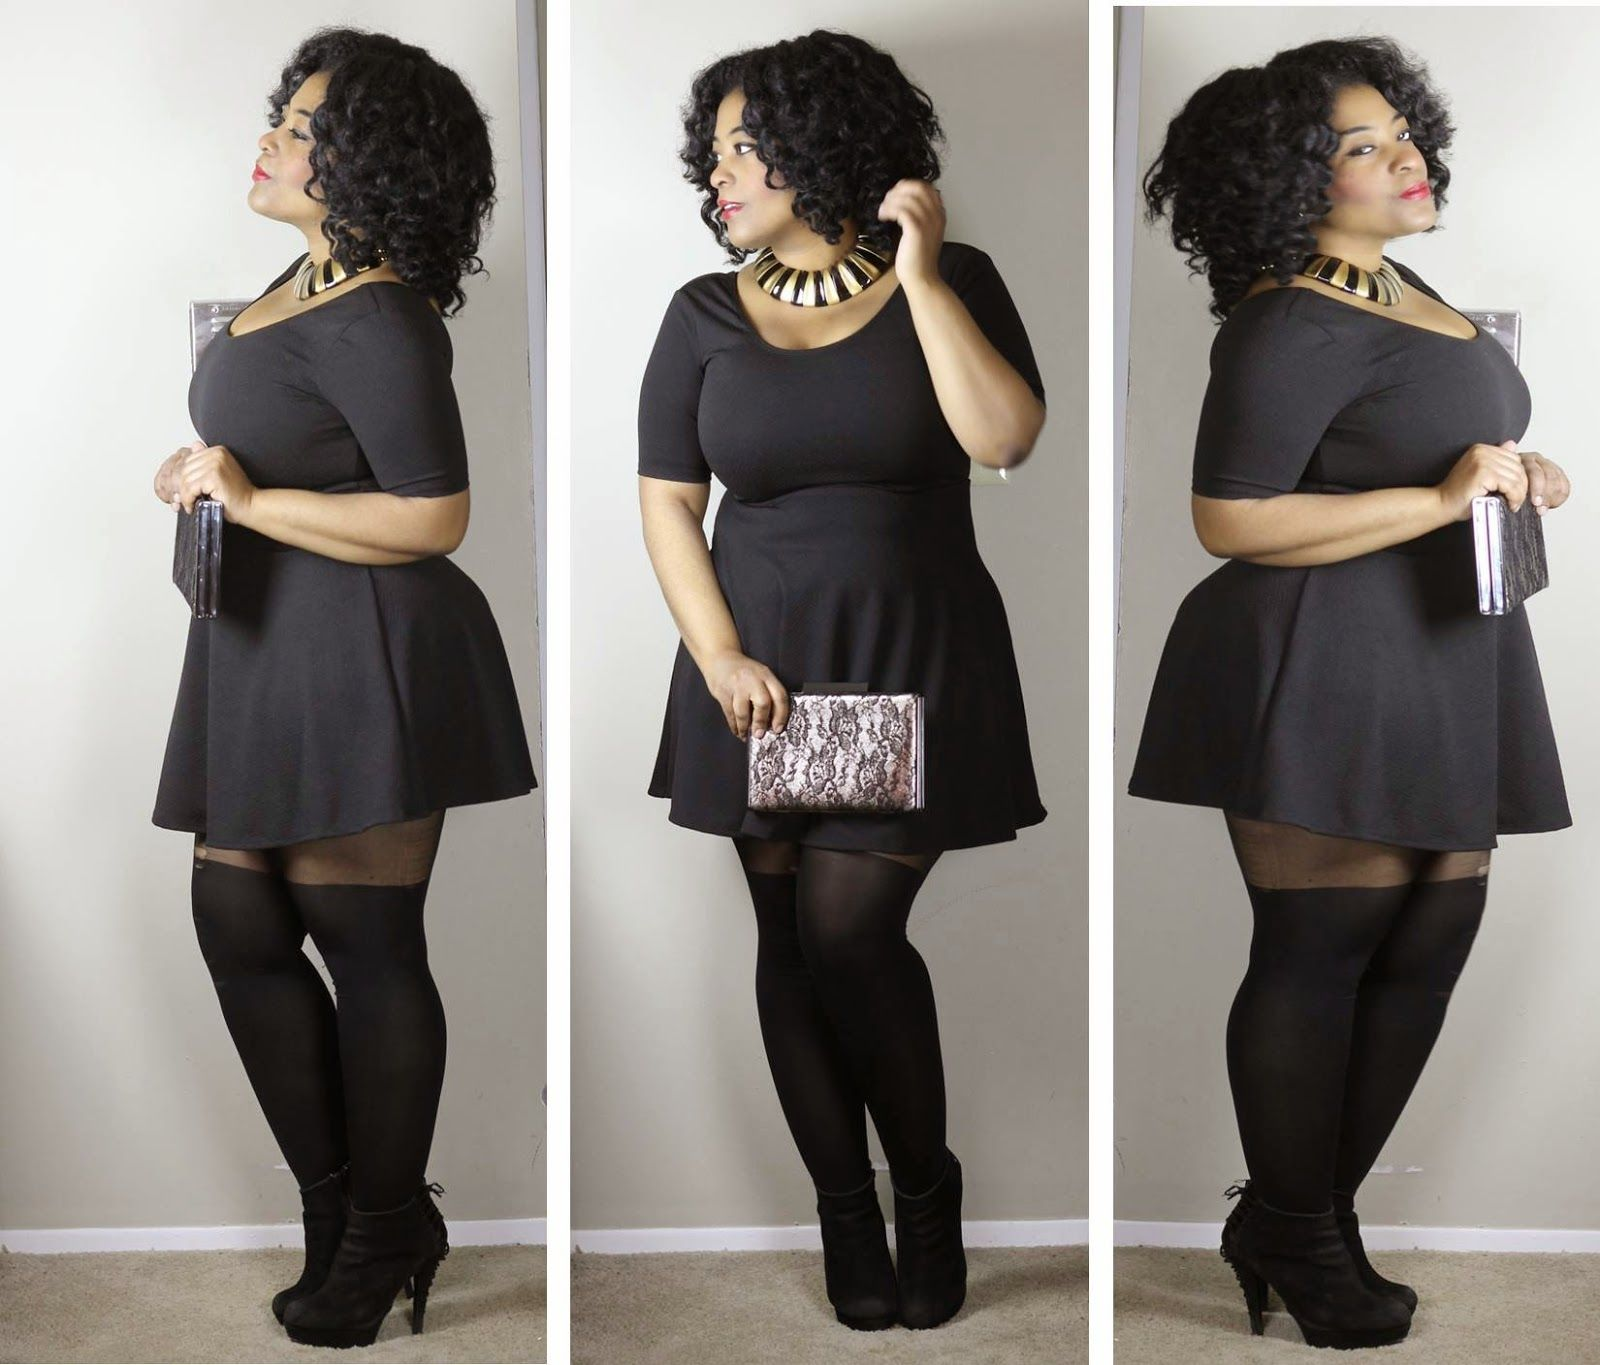 style chic 360: valentine's day inspiration | date night in your